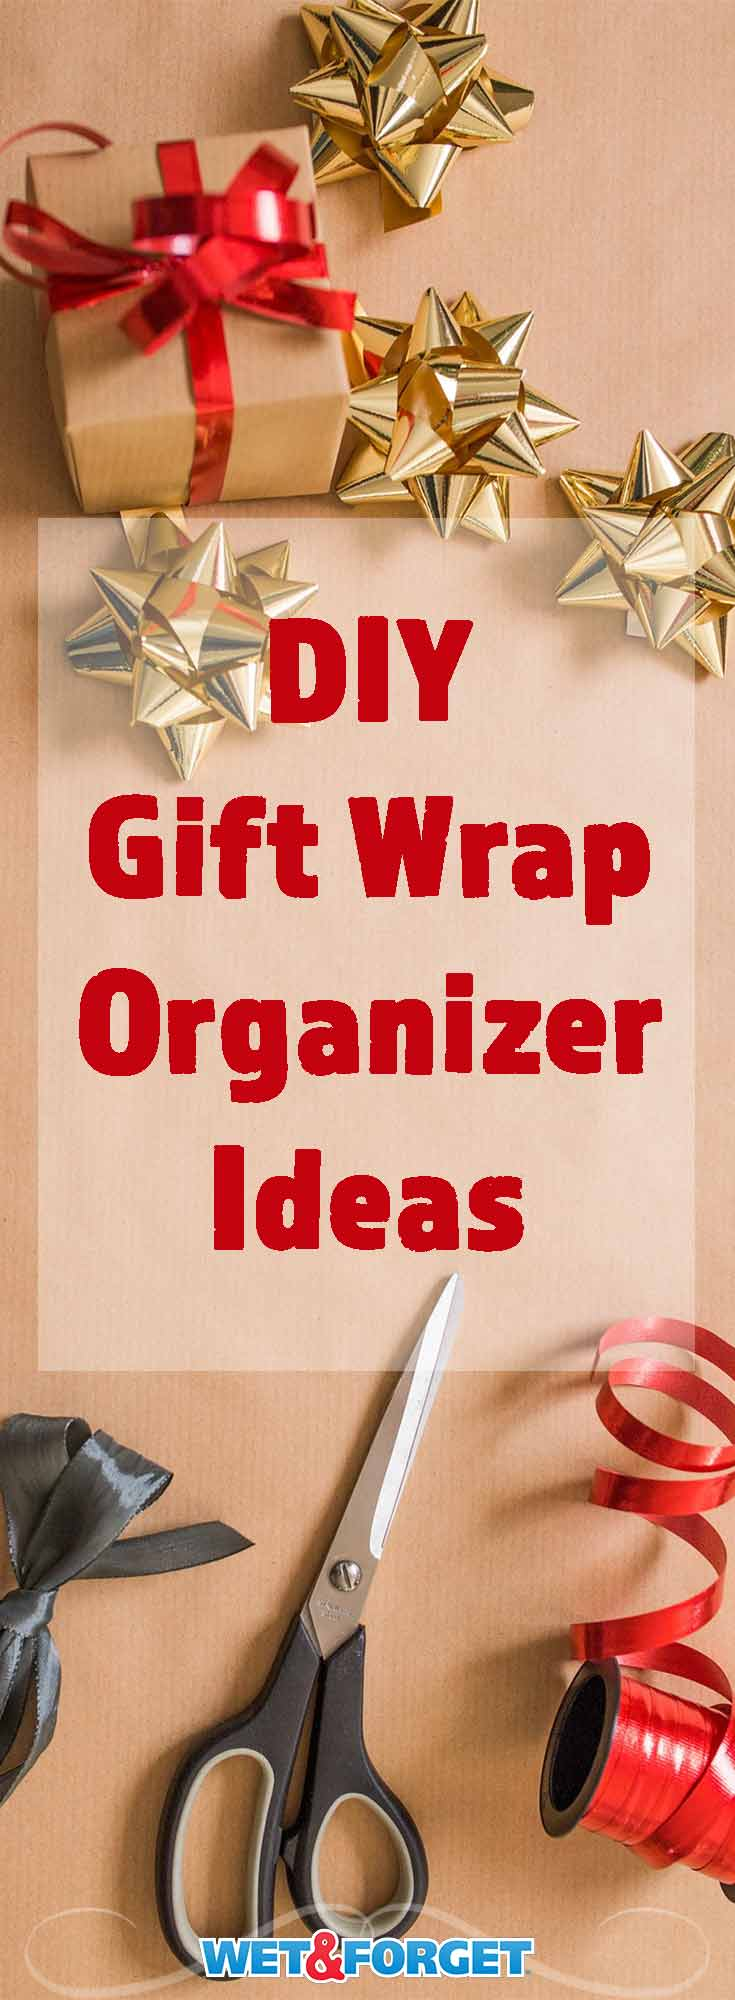 Organize your gift wrap, bags, ribbons and more with these easy DIY ideas!